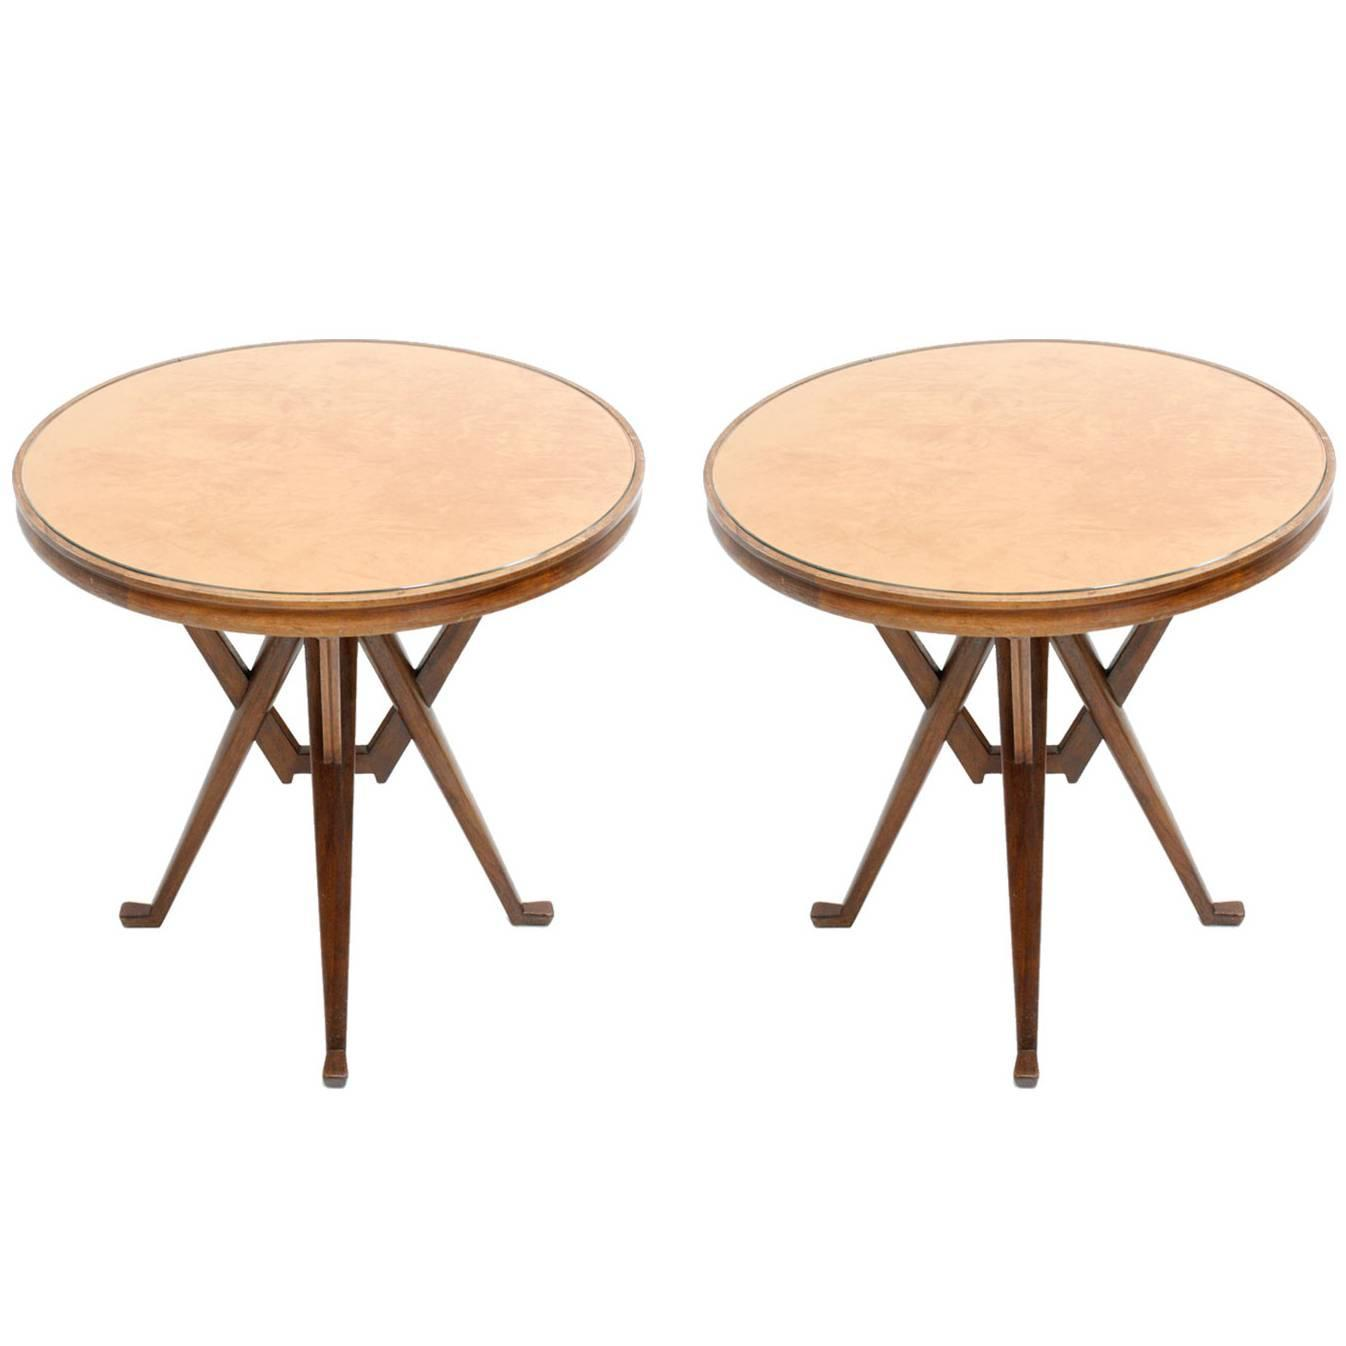 Carlo Mollino Influenced Pair Of Pedestal Tables For Sale At 1stdibs